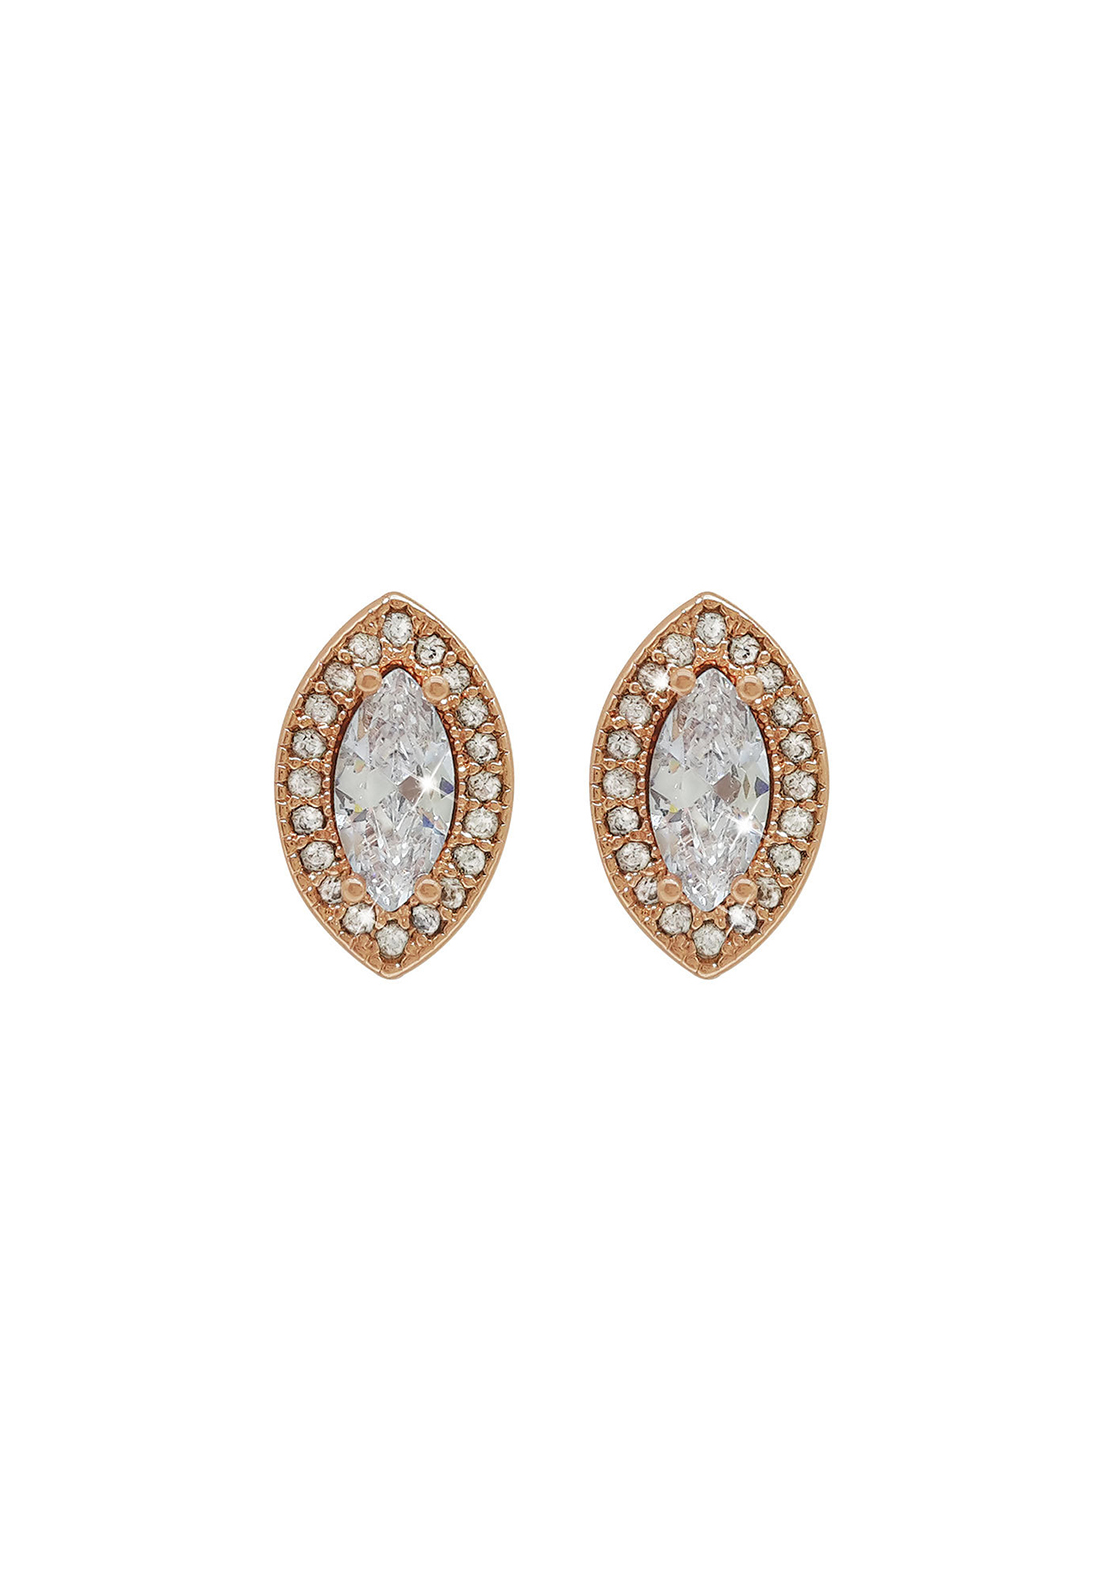 Tipperary Crystal Marquis Cut Stud Earrings, Rose Gold